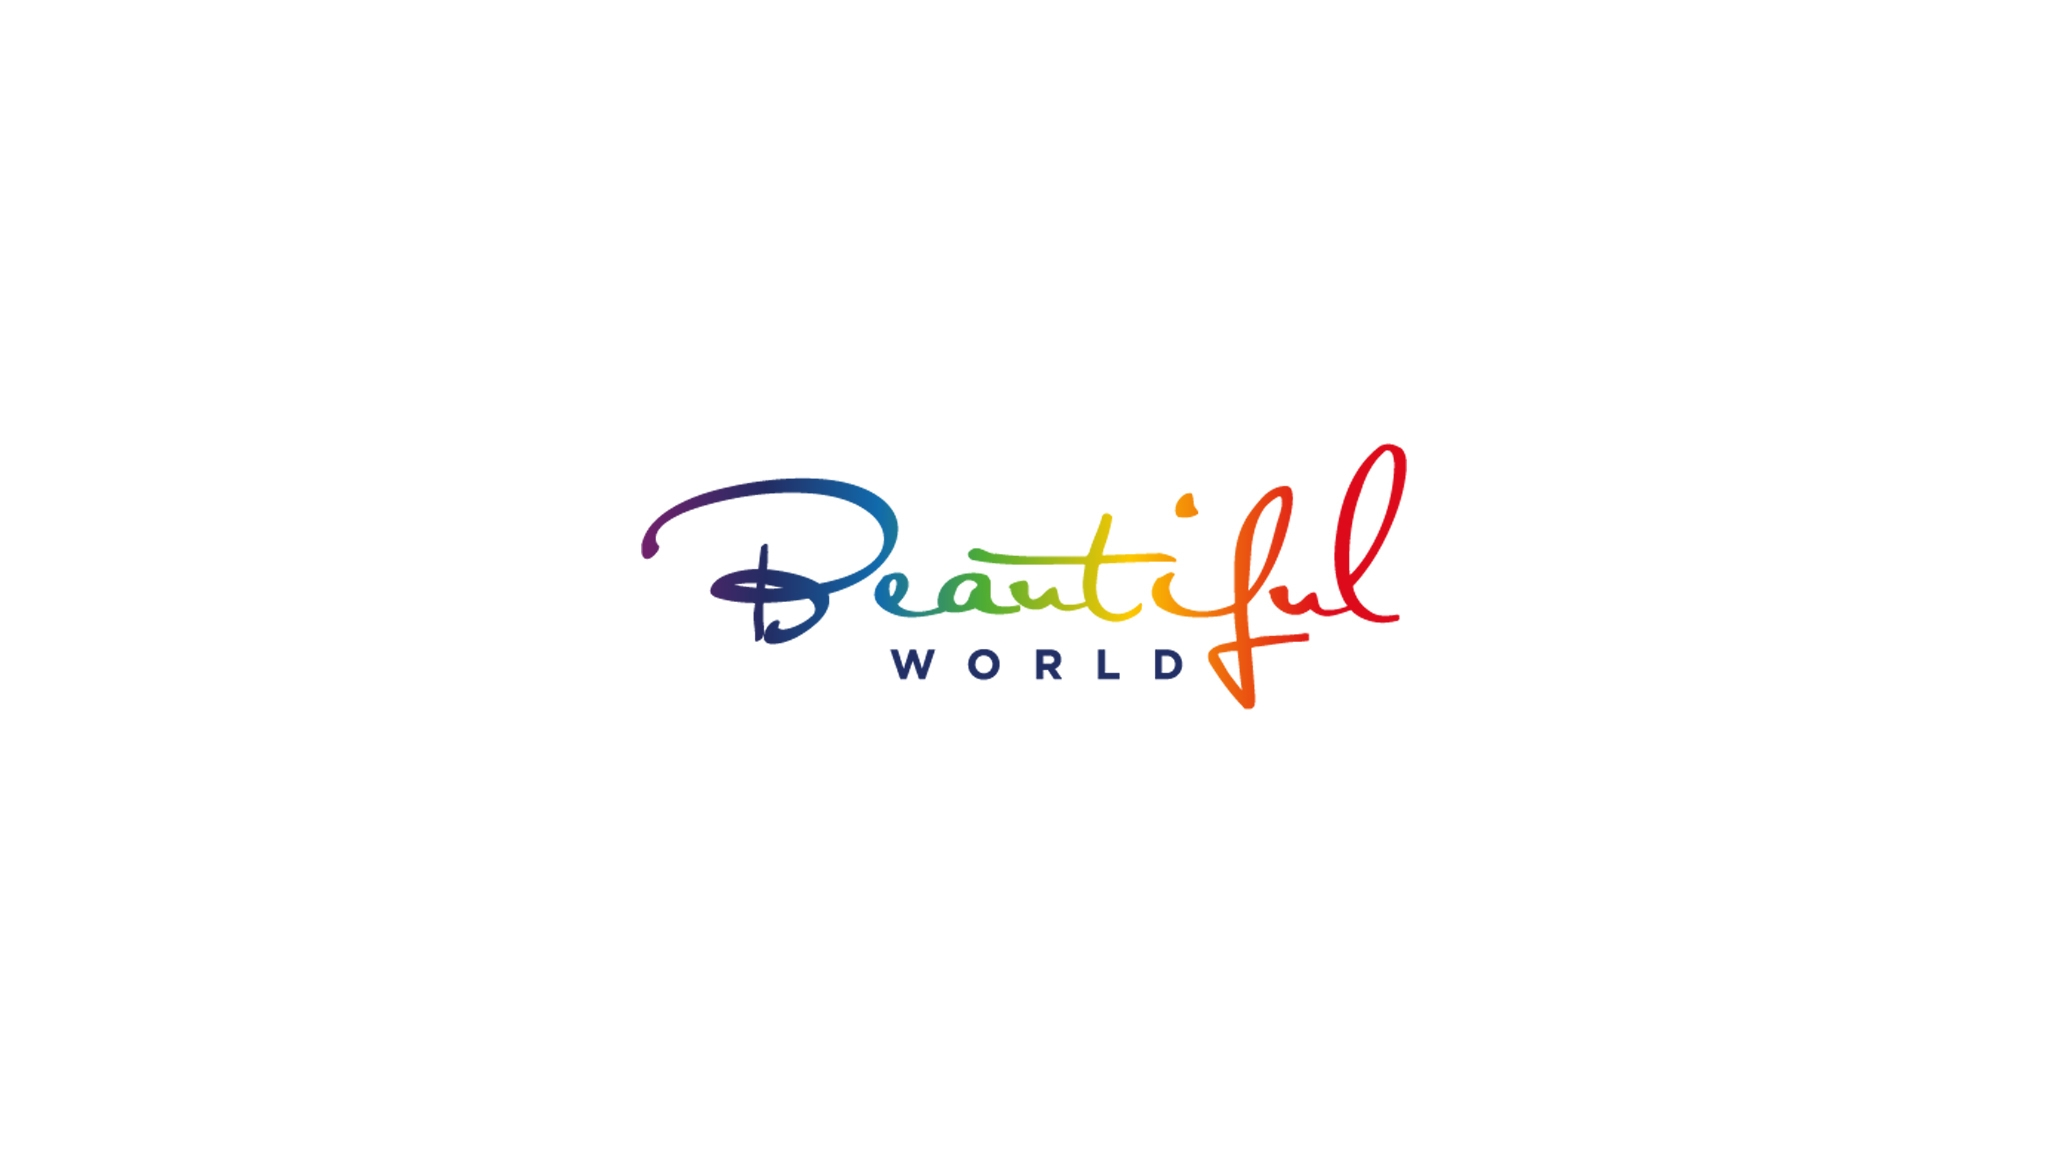 Beautiful World Travel Guide (@beautifulworldtravelguide) Cover Image